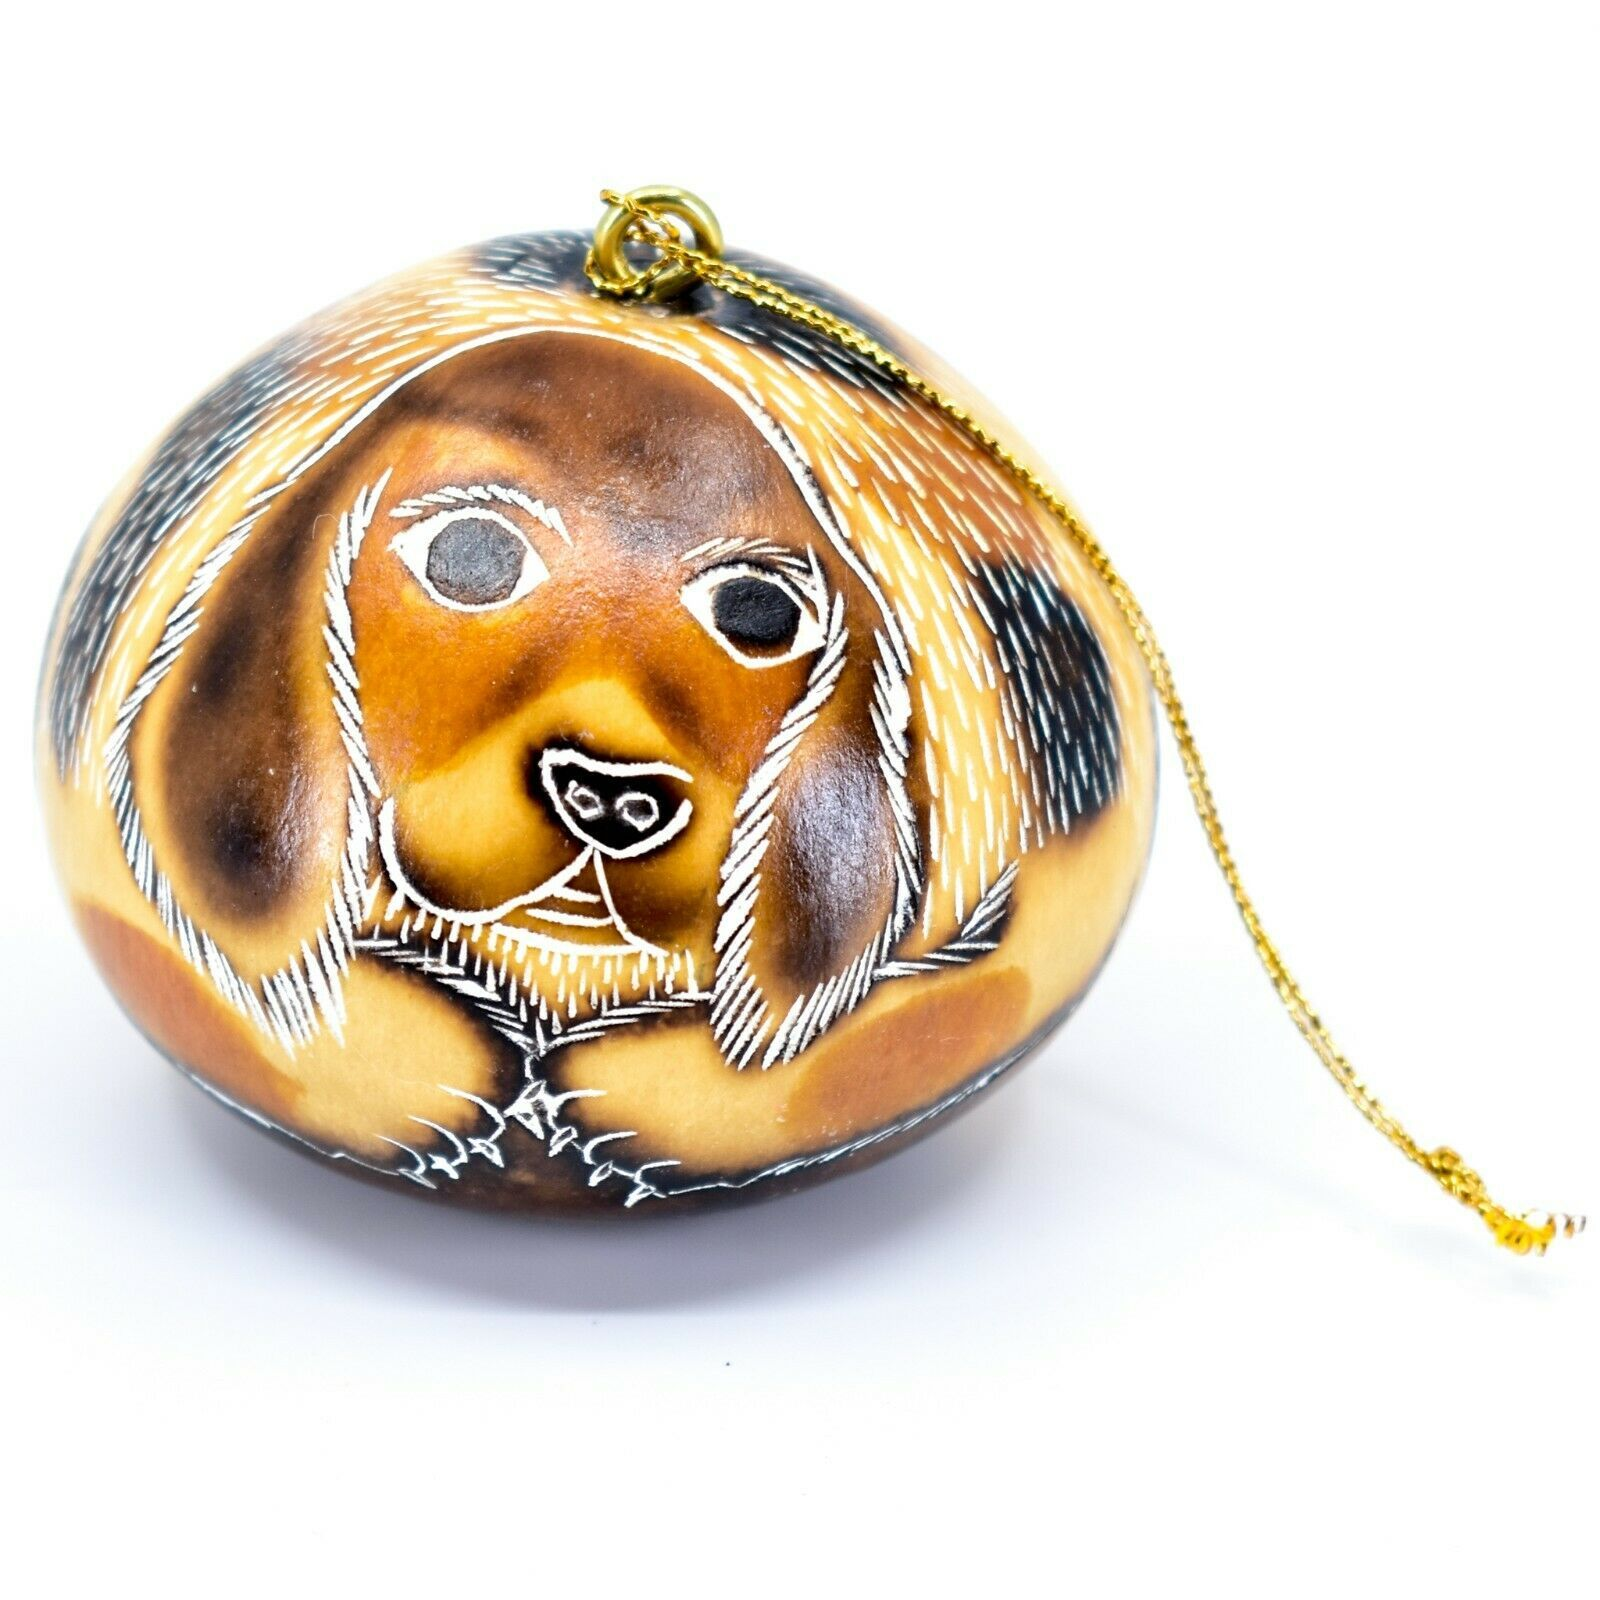 Handcrafted Carved Gourd Art Beagle Puppy Dog Ornament Handmade in Peru